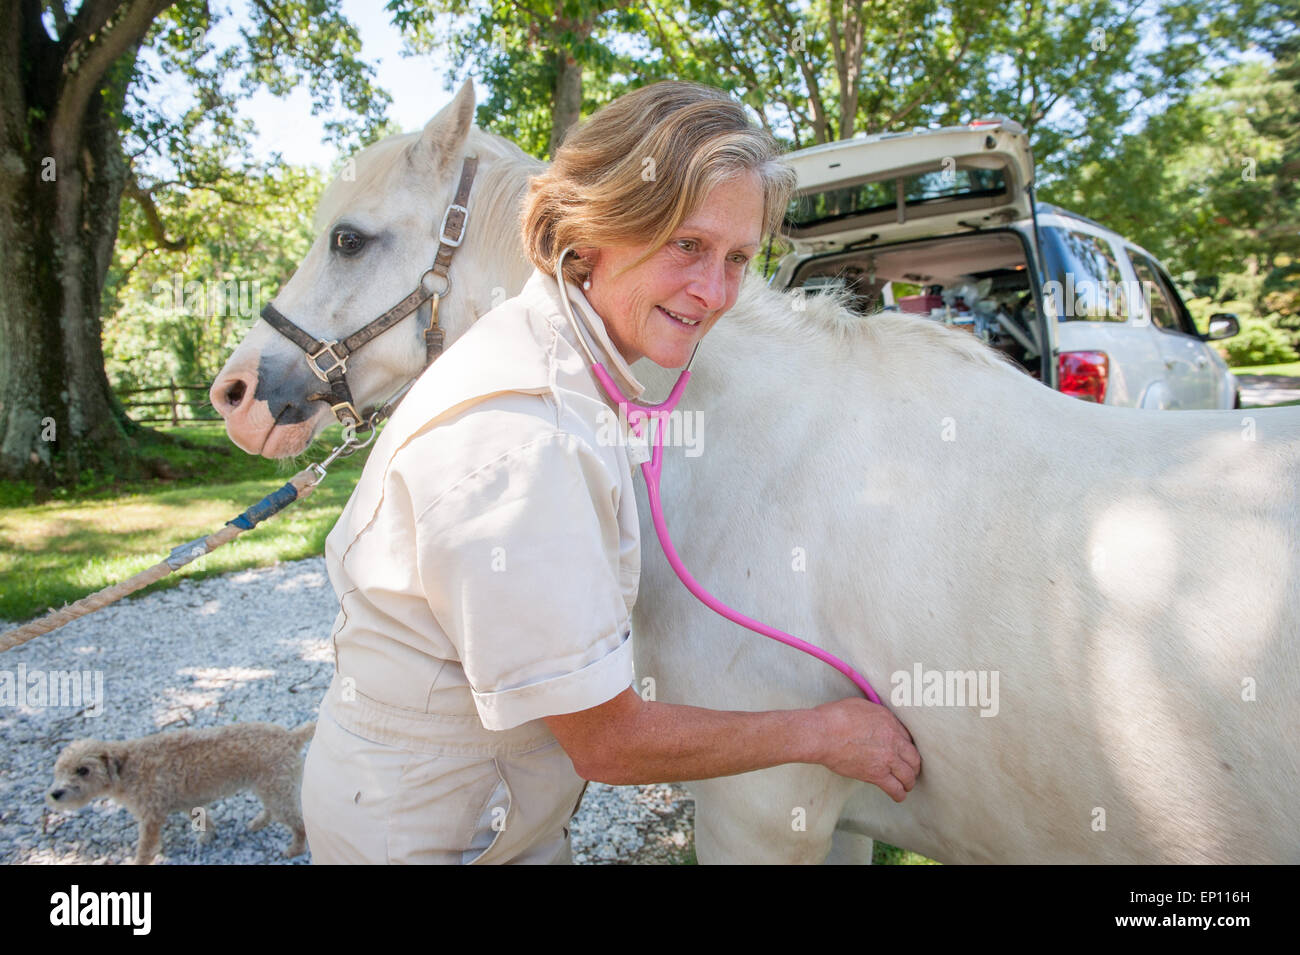 Equine vet using a stethoscope on a horse in Sparks, Maryland, USA - Stock Image